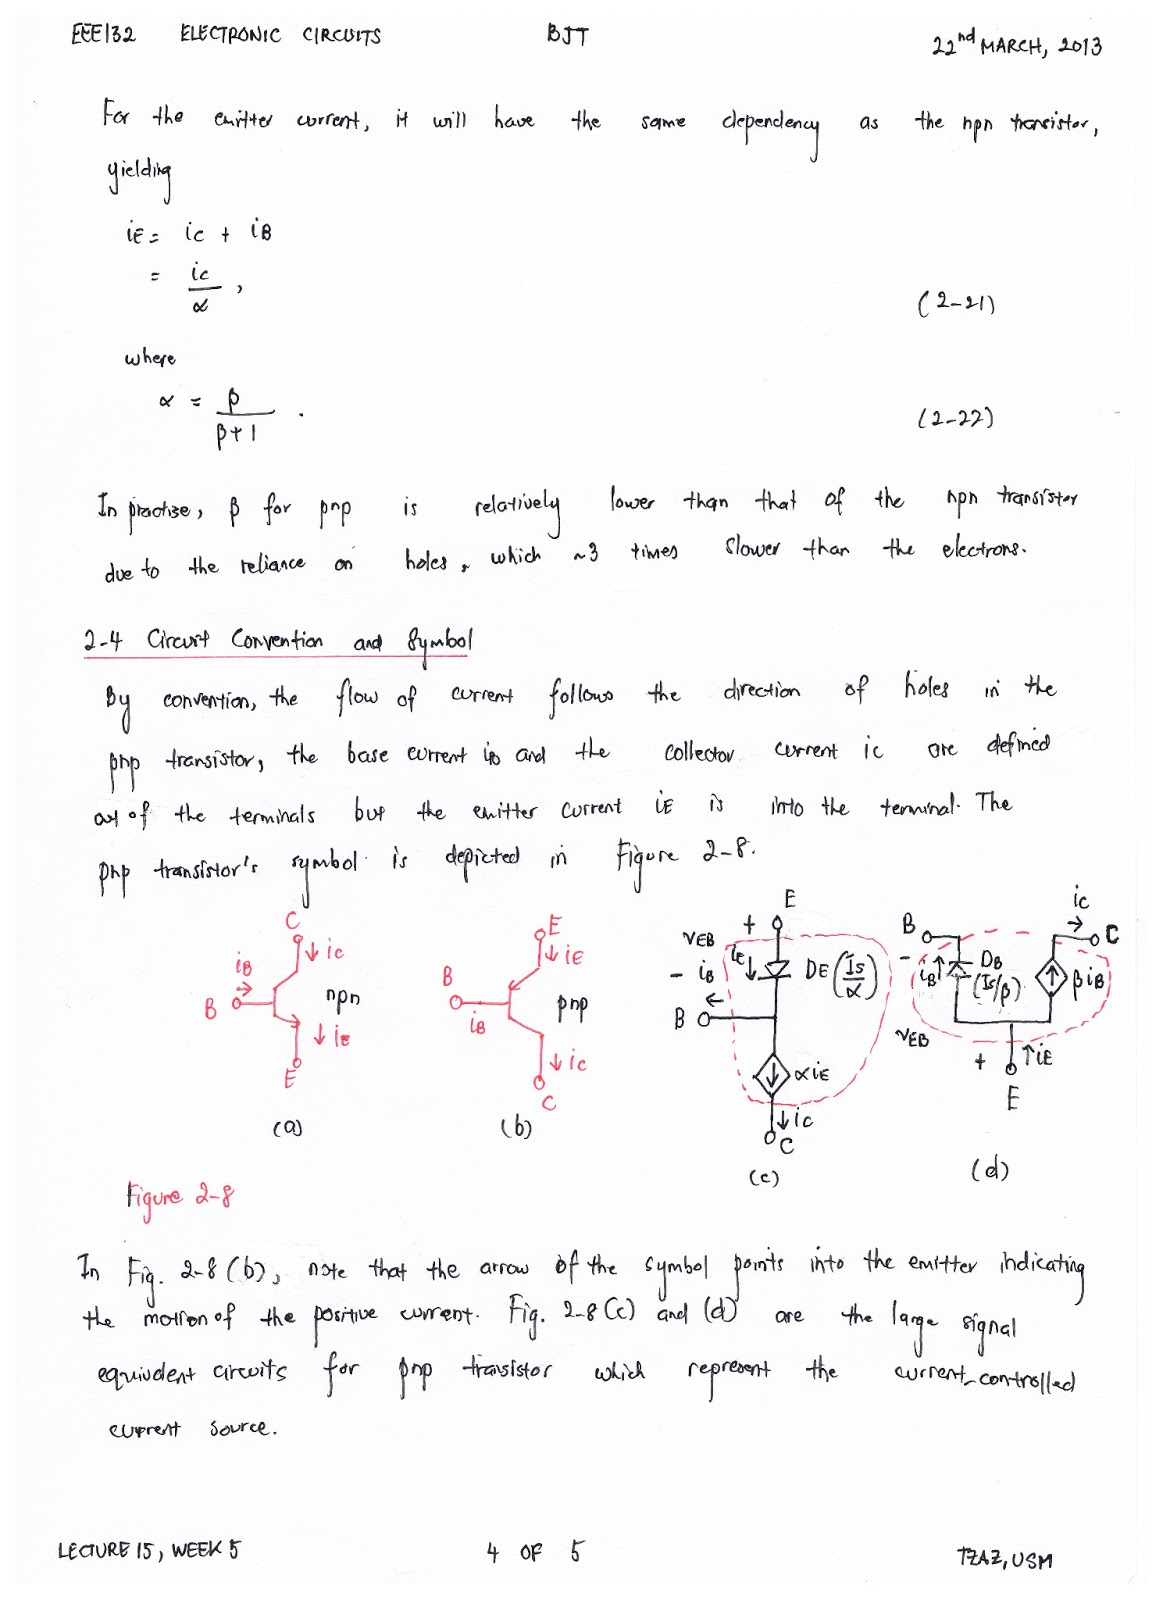 EEE132 ELECTRONIC CIRCUITS Lecture 15 22nd March, 2013 (Week